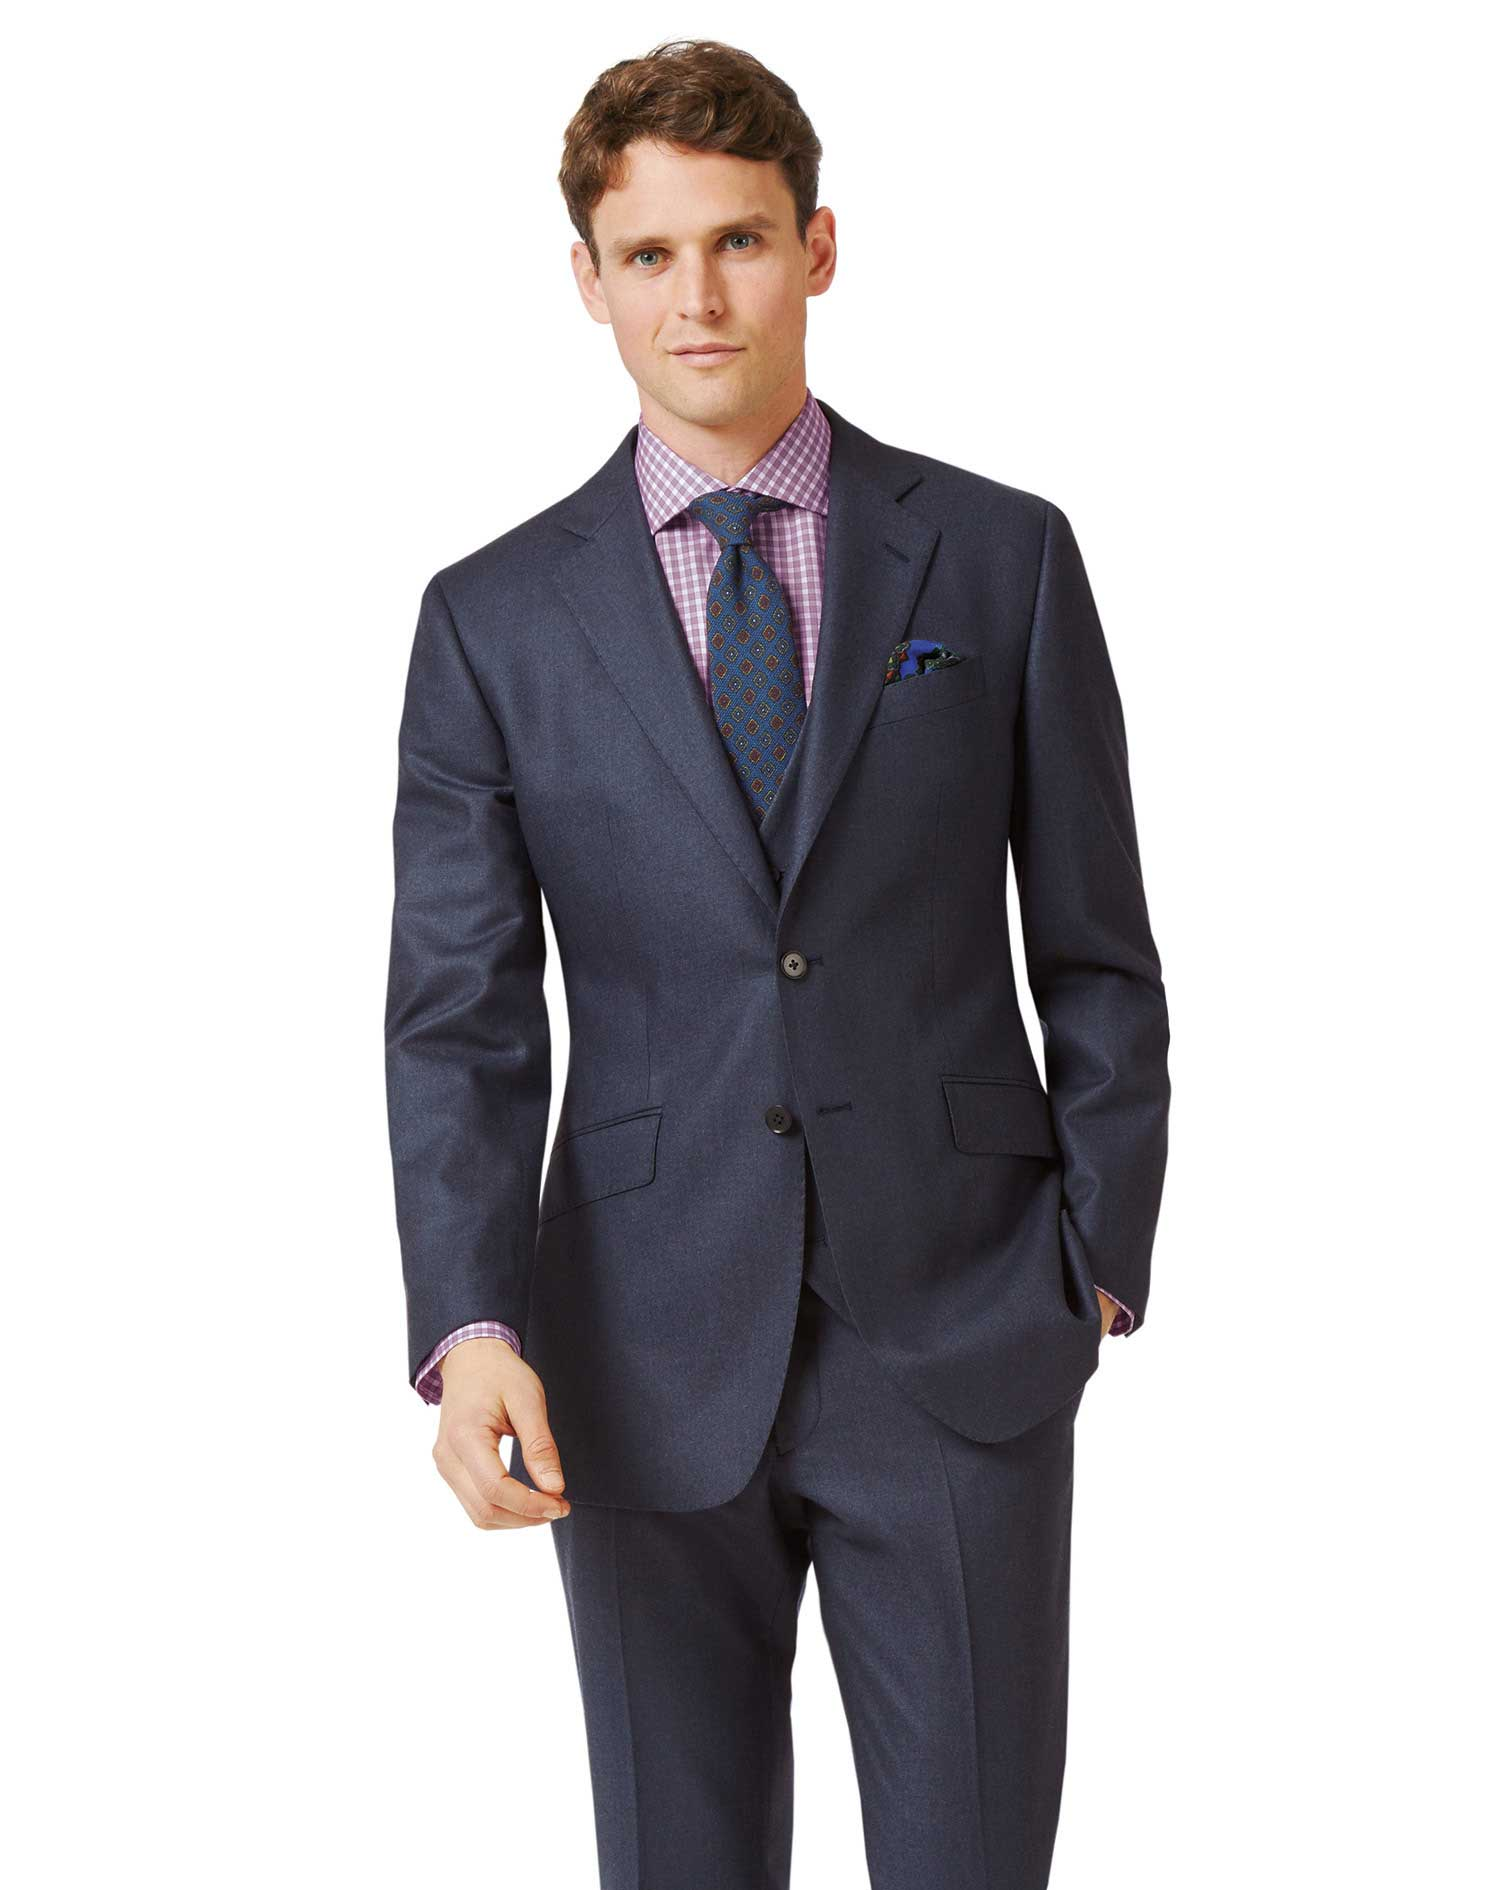 Image of Charles Tyrwhitt Airforce Blue Slim Fit Flannel Business Suit Wool Jacket Size 36 Regular by Charles Tyrwhitt